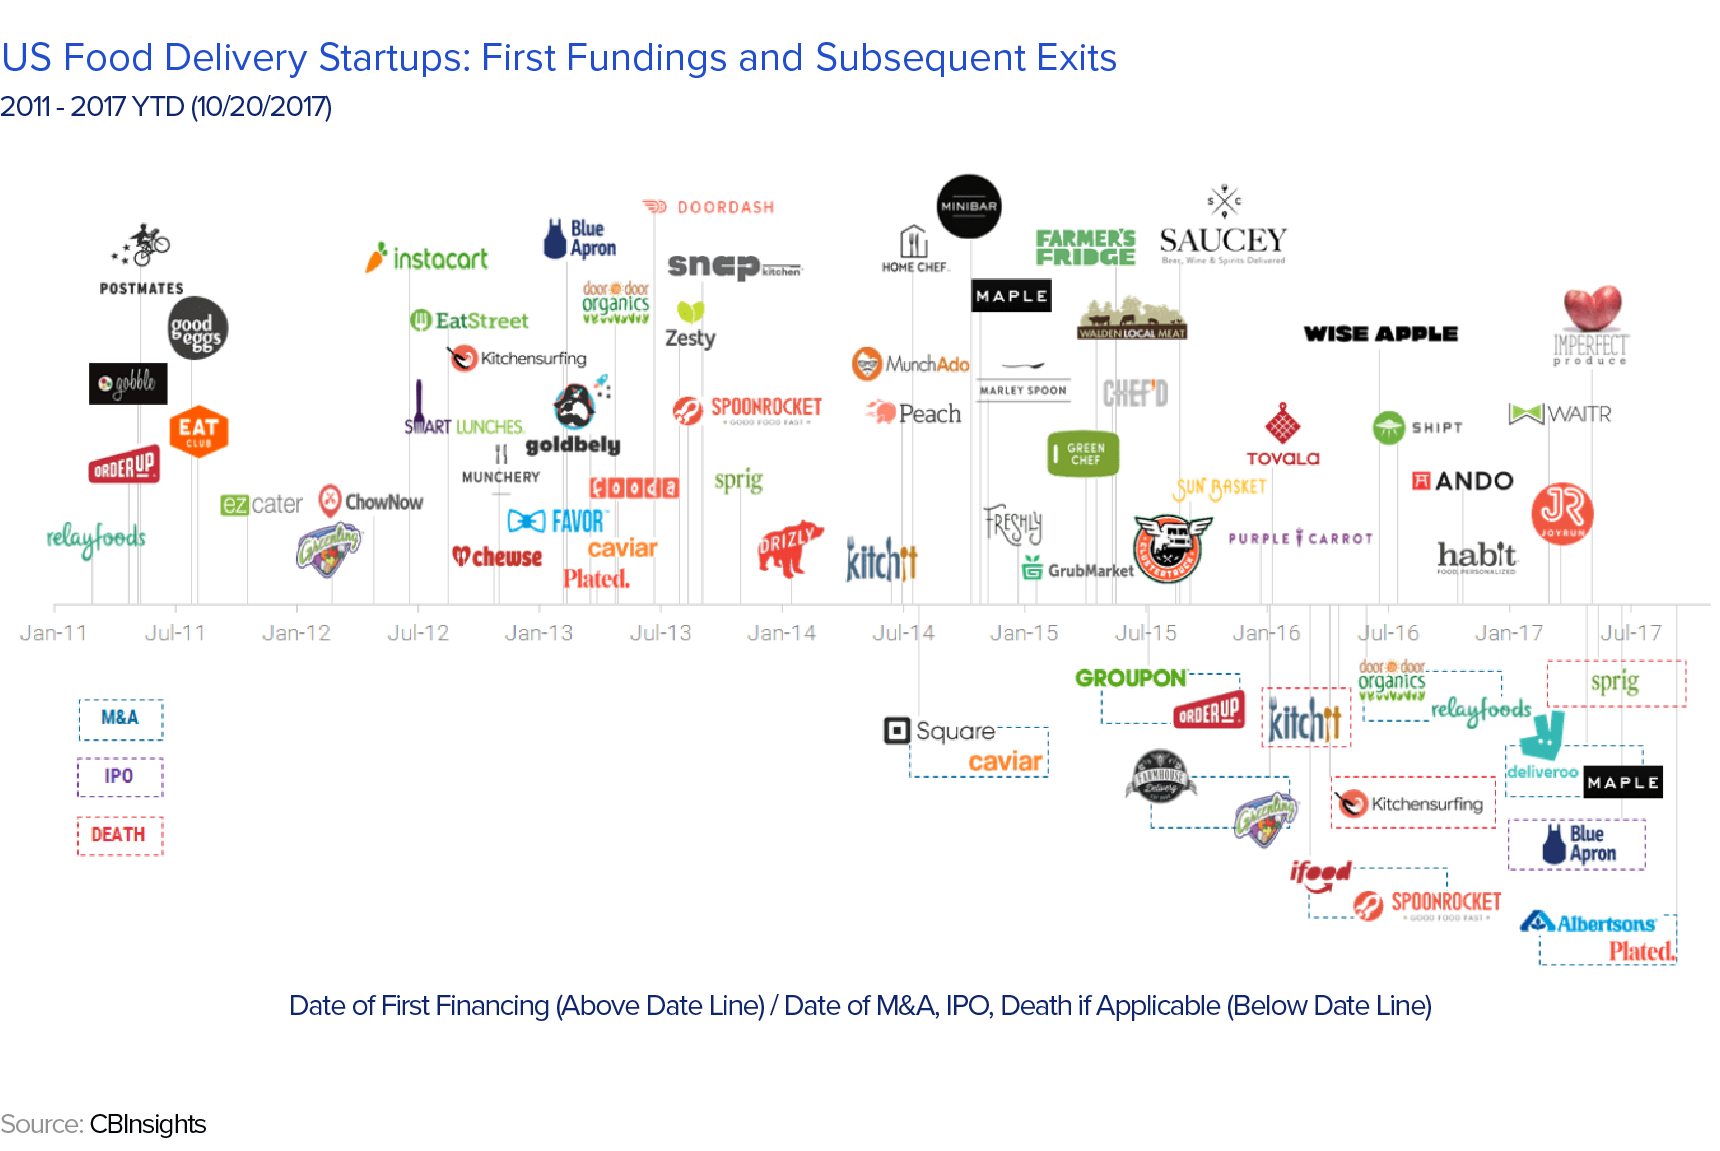 US food delivery startups' first fundings and subsequent exits